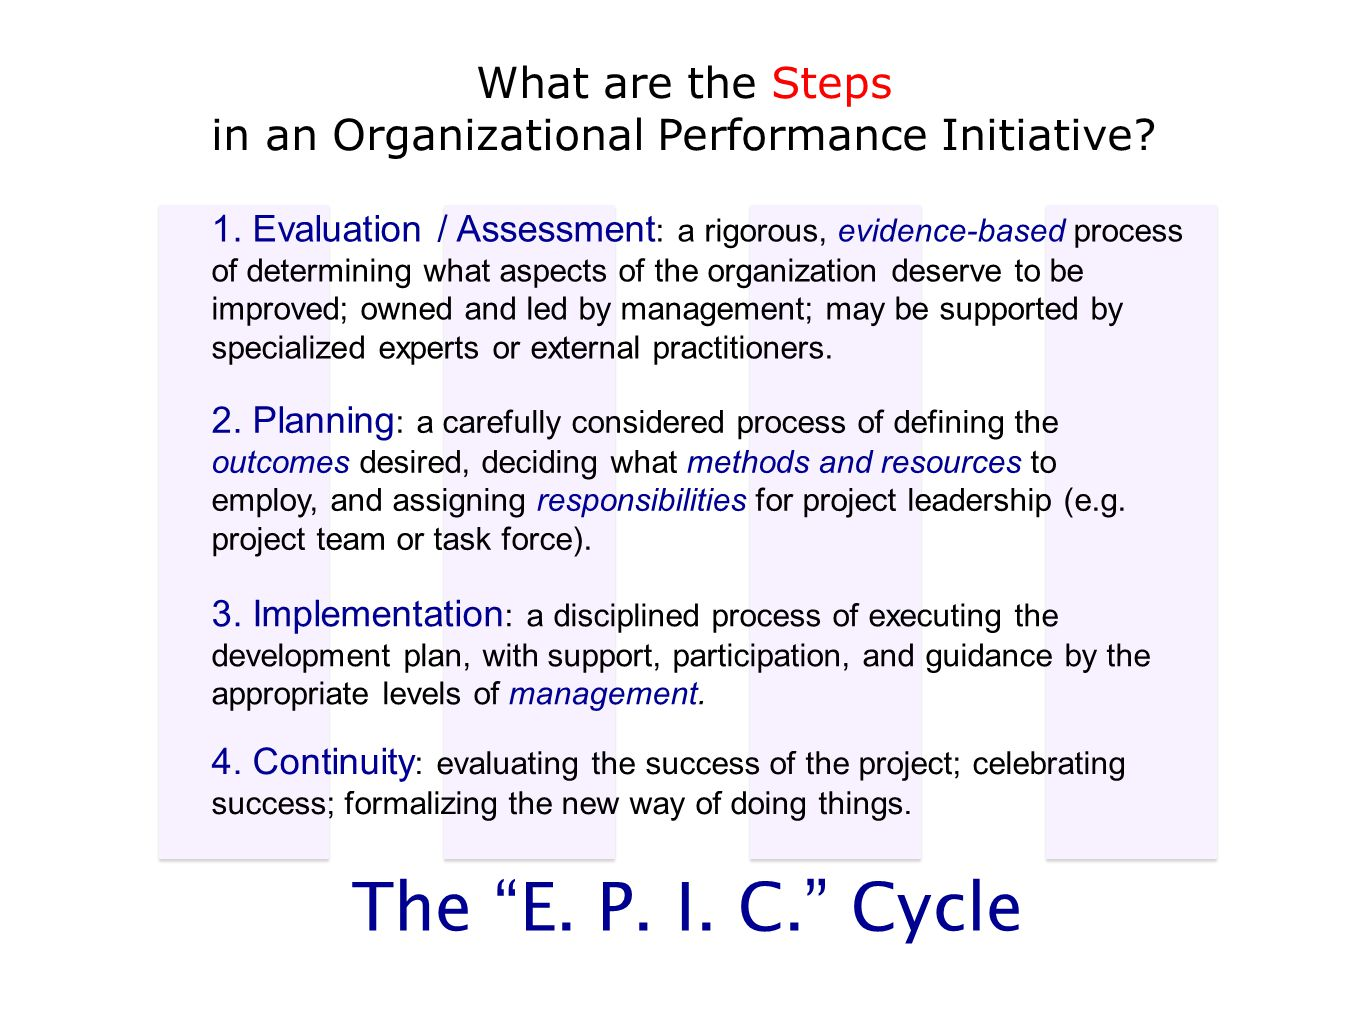 What are the Steps in an Organizational Performance Initiative? 1. Evaluation / Assessment : a rigorous, evidence-based process of determining what as